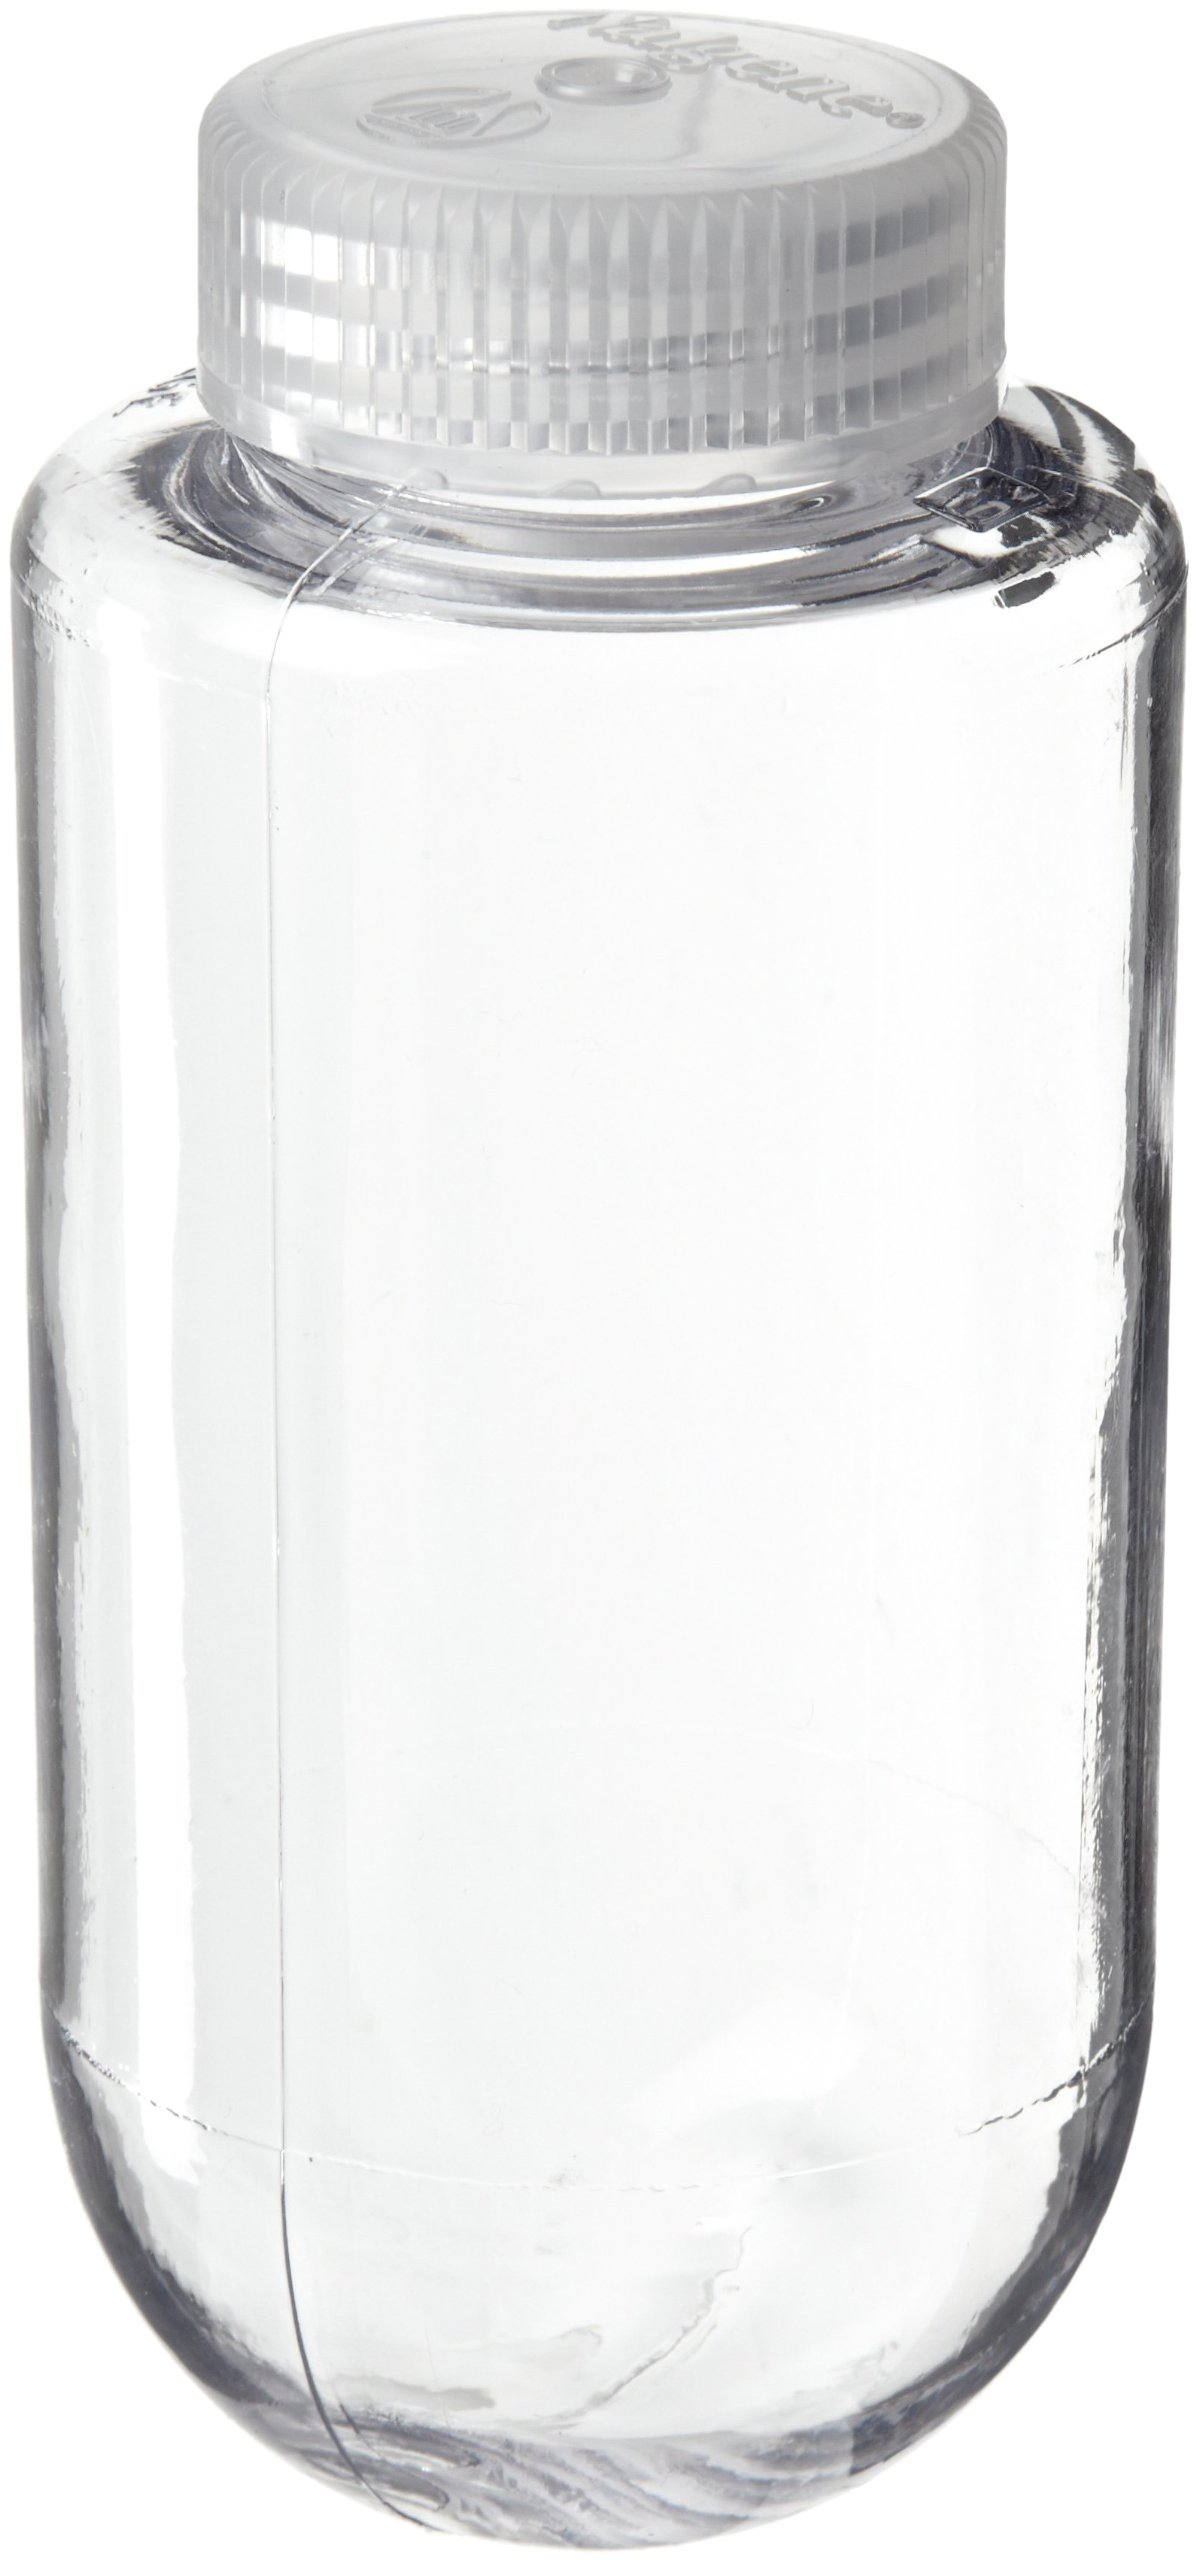 Nalgene 3123-0250 Polycarbonate Spherical Bottom 250mL Centrifuge Bottle with Polypropylene Screw Closure, Max Rating 27500 x g (Pack of 4)